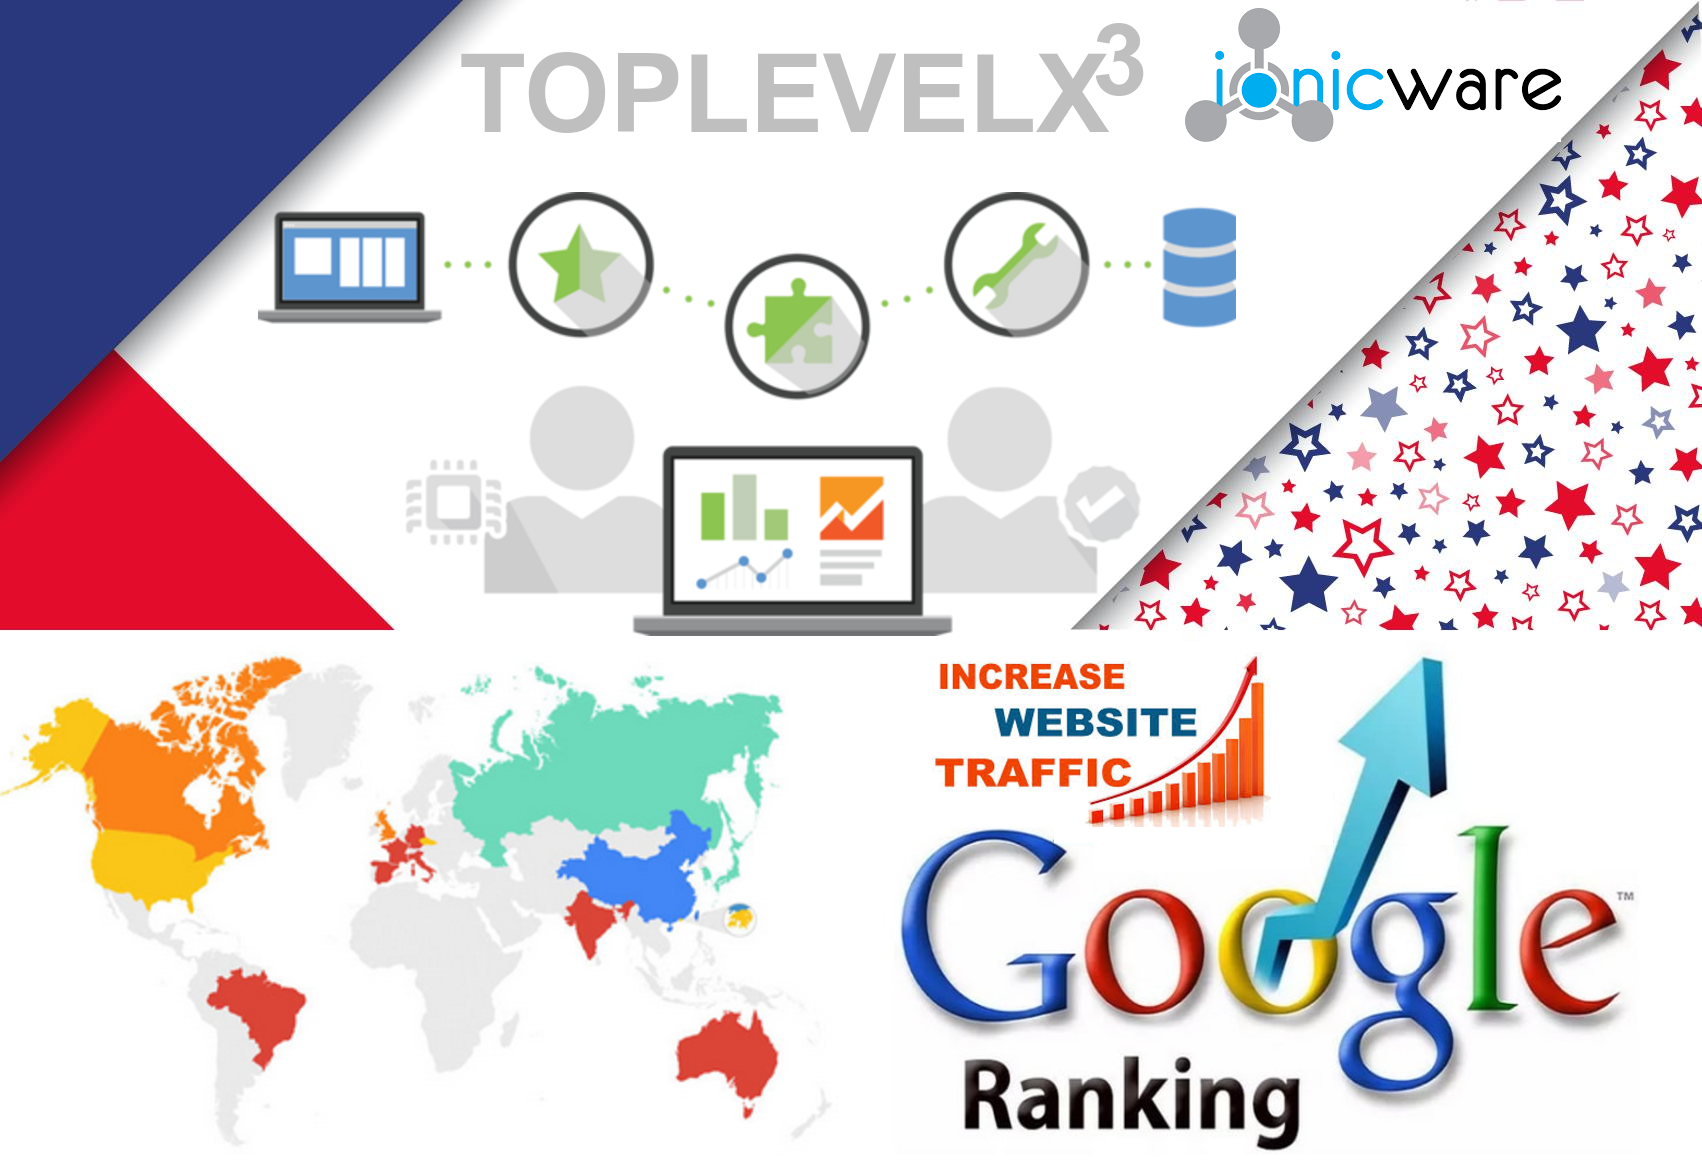 5,000 H-Q Keywords Research Worldwide Website Analytics Quality Traffic Improvement Google Rankings